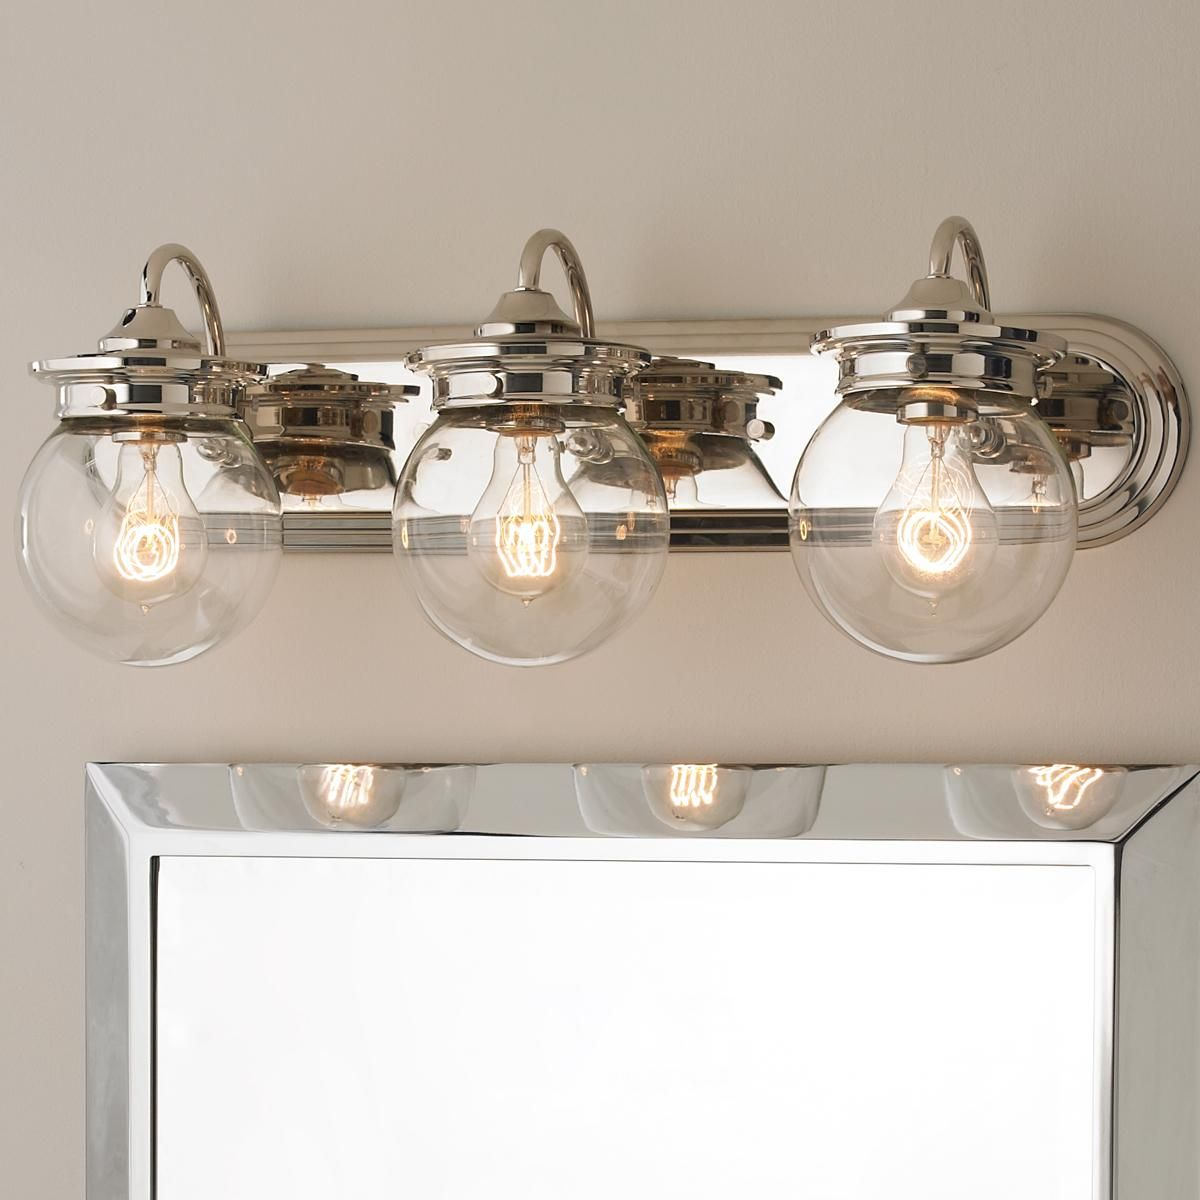 Bathroom Vanity Lights Traditional : Traditional Clear Glass Globe Bath Light - 3 Light Bath light and Traditional baths